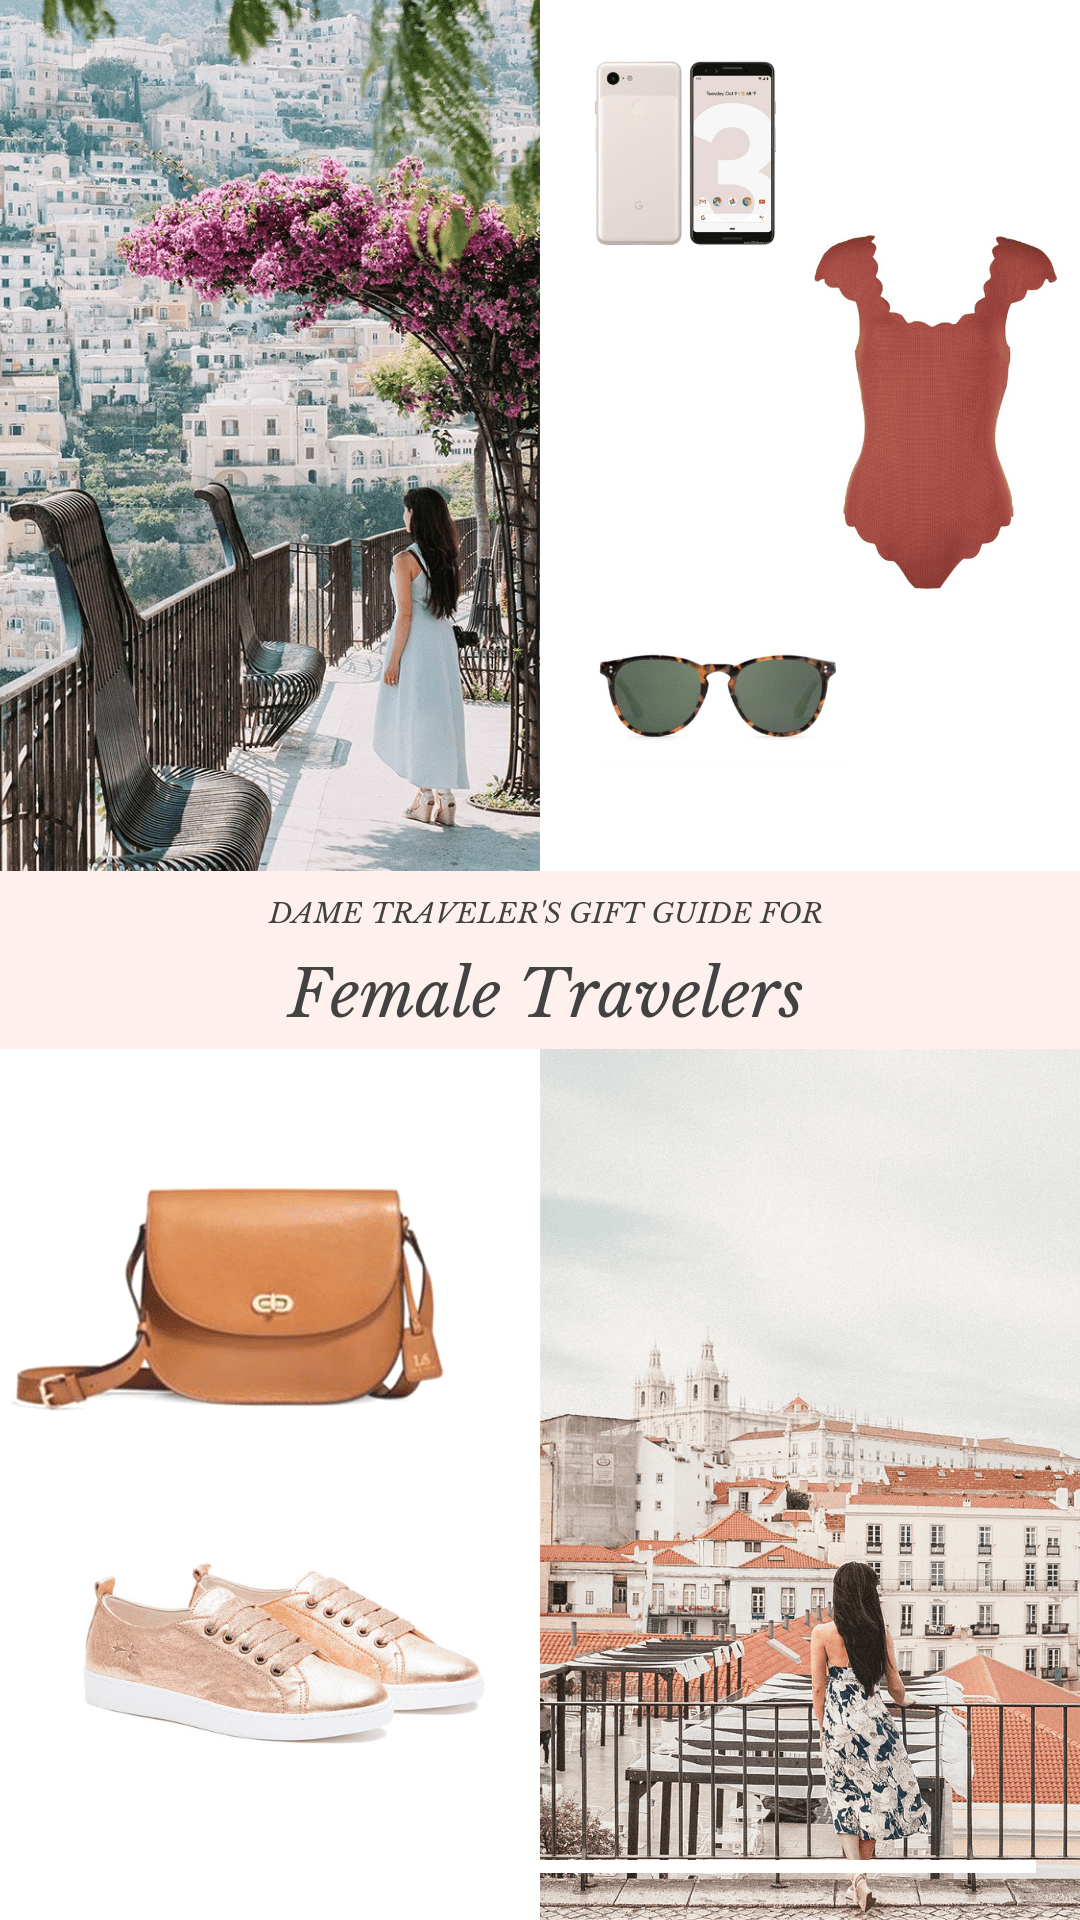 Dame Traveler's Gift Guide For Female Travelers